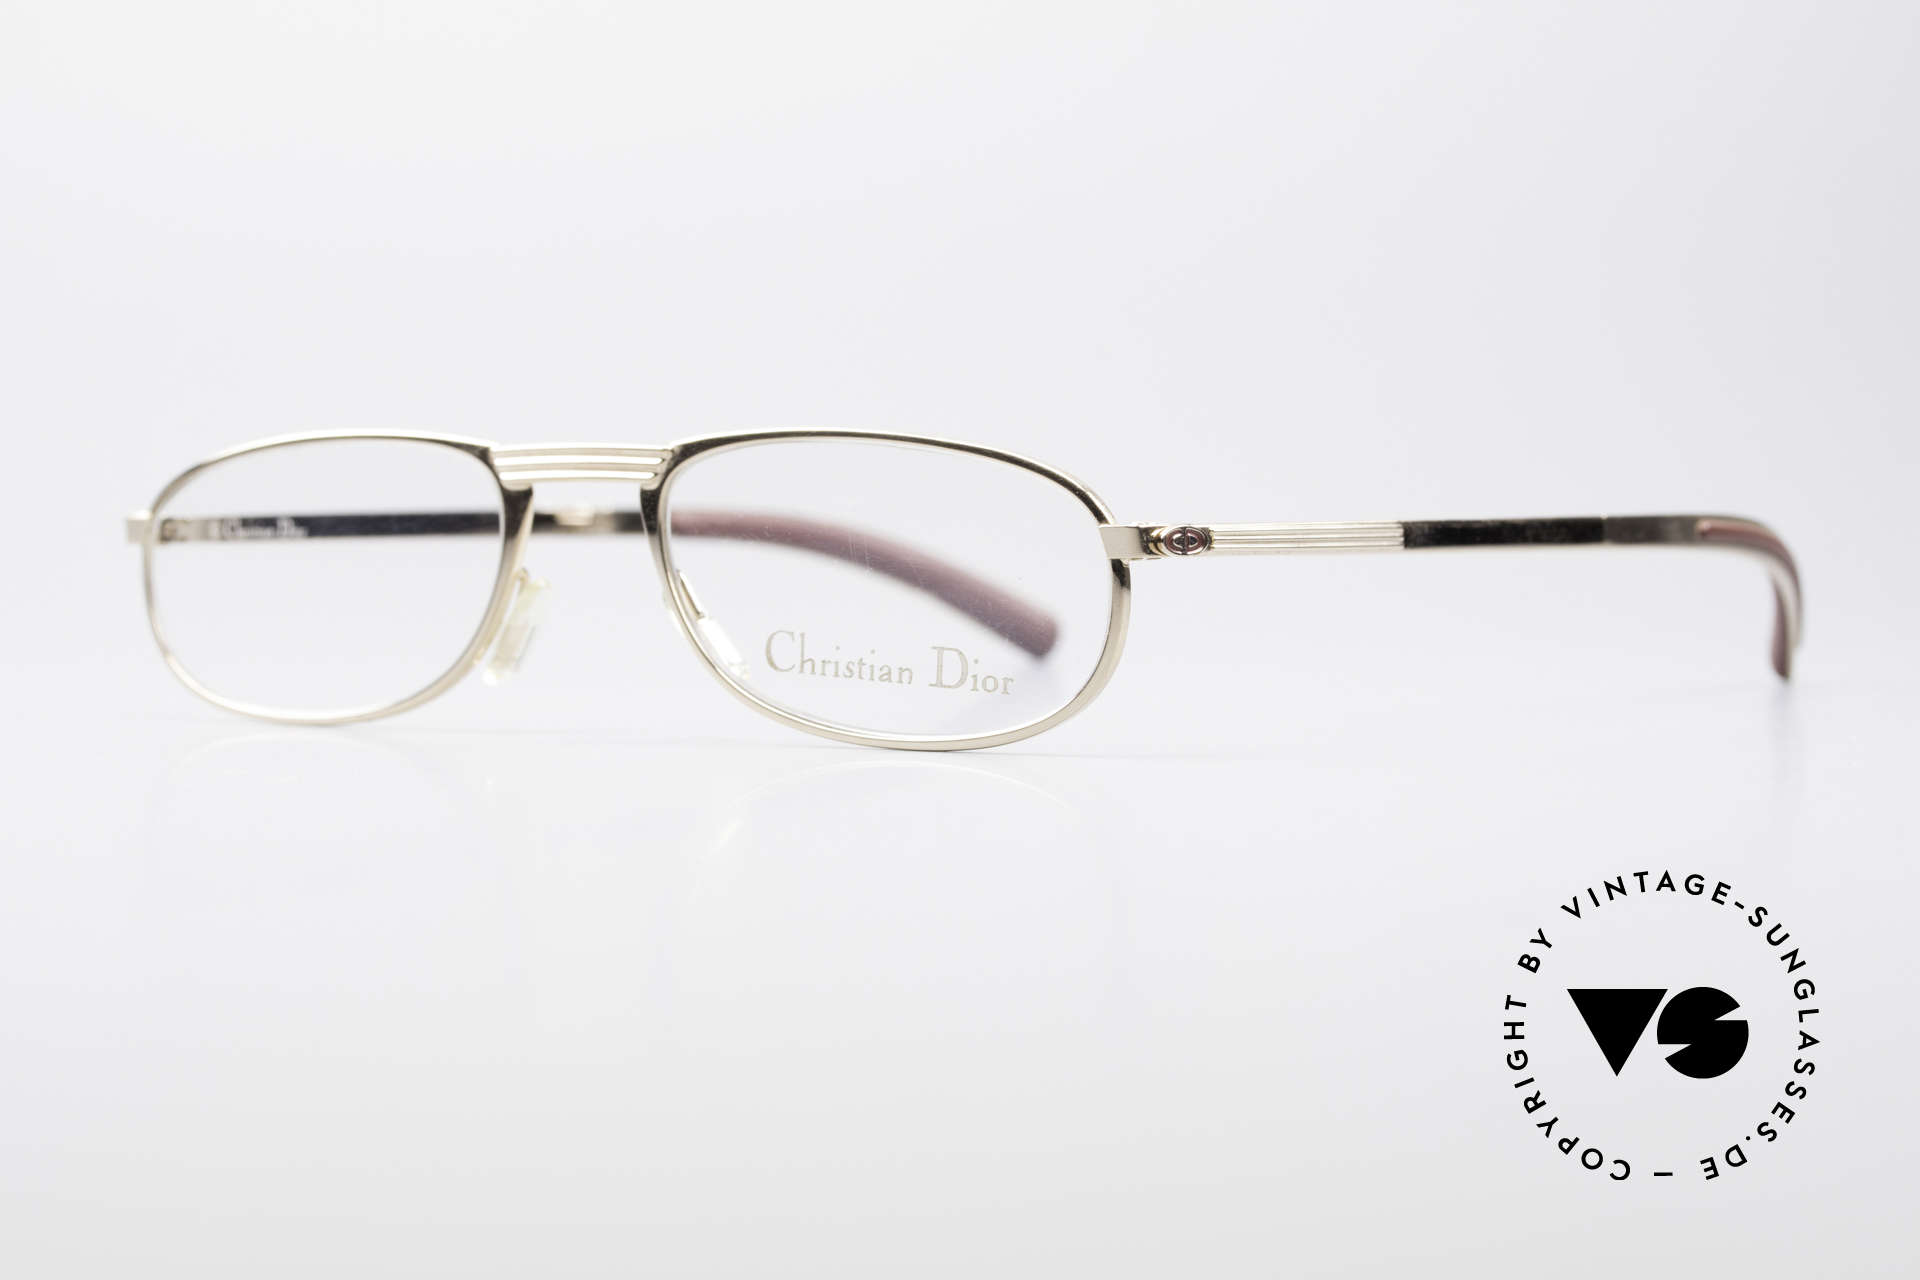 Christian Dior 2727 Designer Reading Eyeglasses, made approx. 1988 in Austria; high-end quality, Made for Men